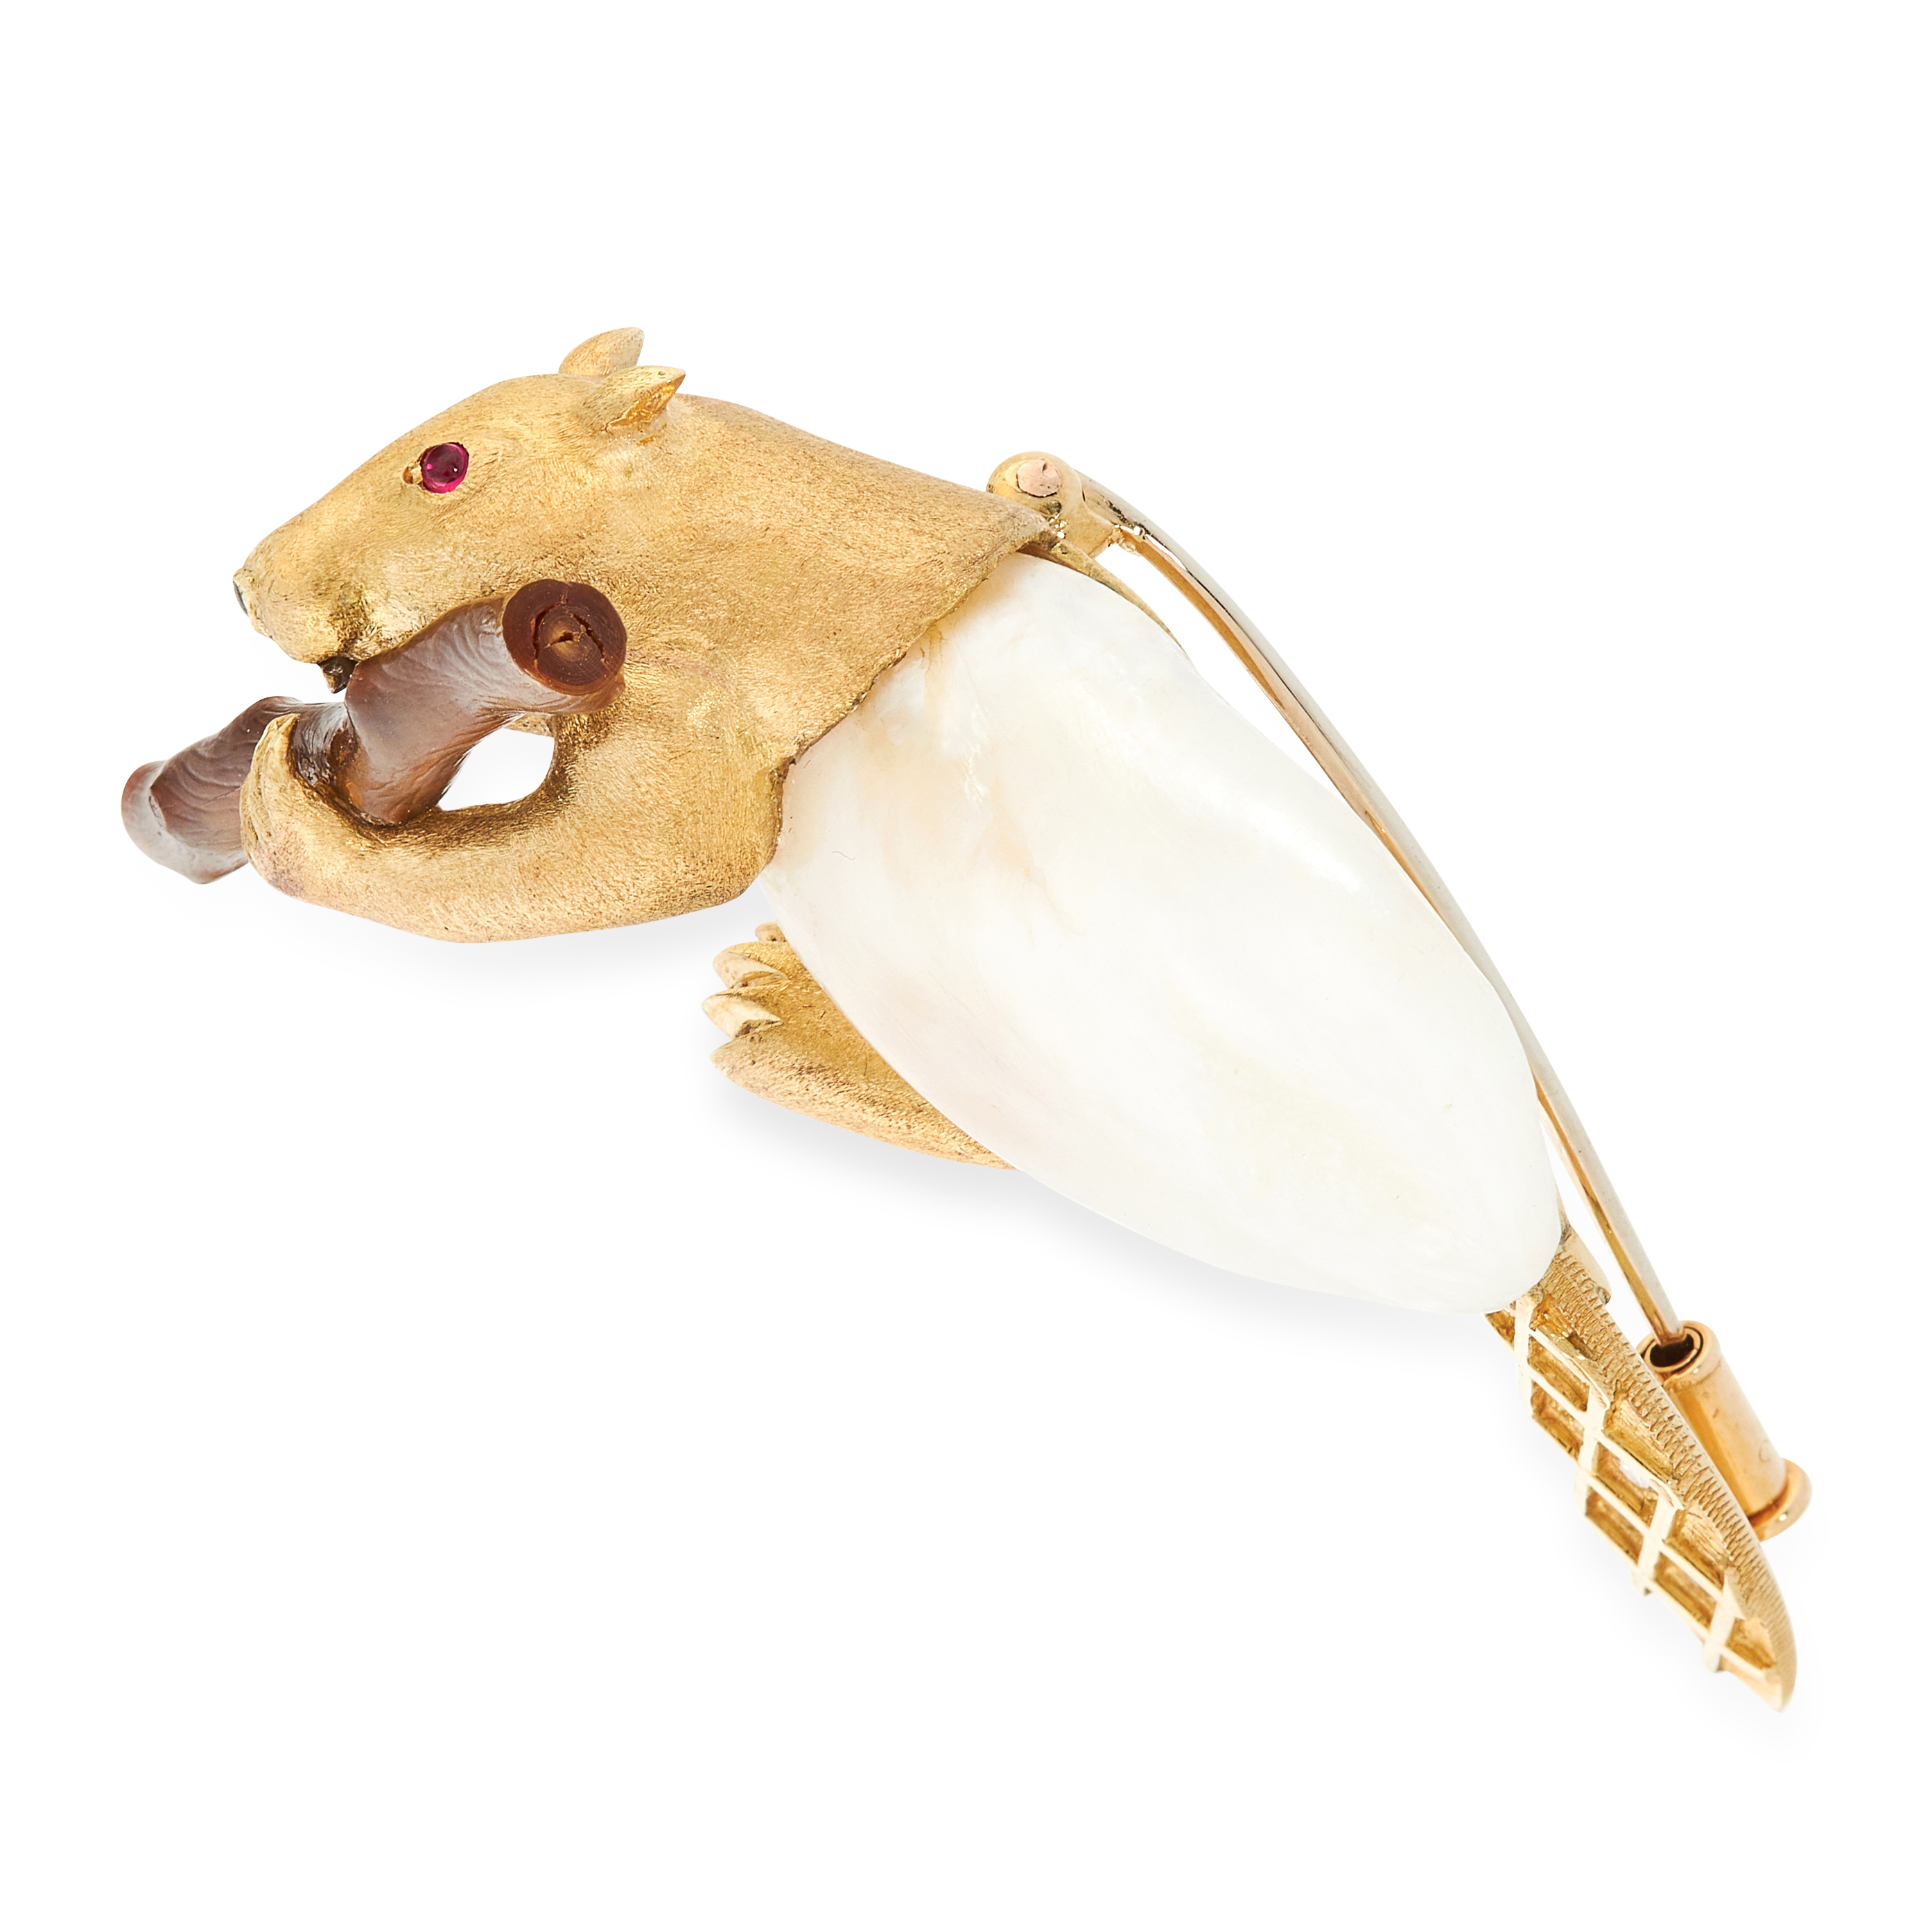 A PEARL, DIAMOND AND RUBY BEAVER BROOCH, E WOLFE & CO in 18ct yellow gold, designed as a beaver